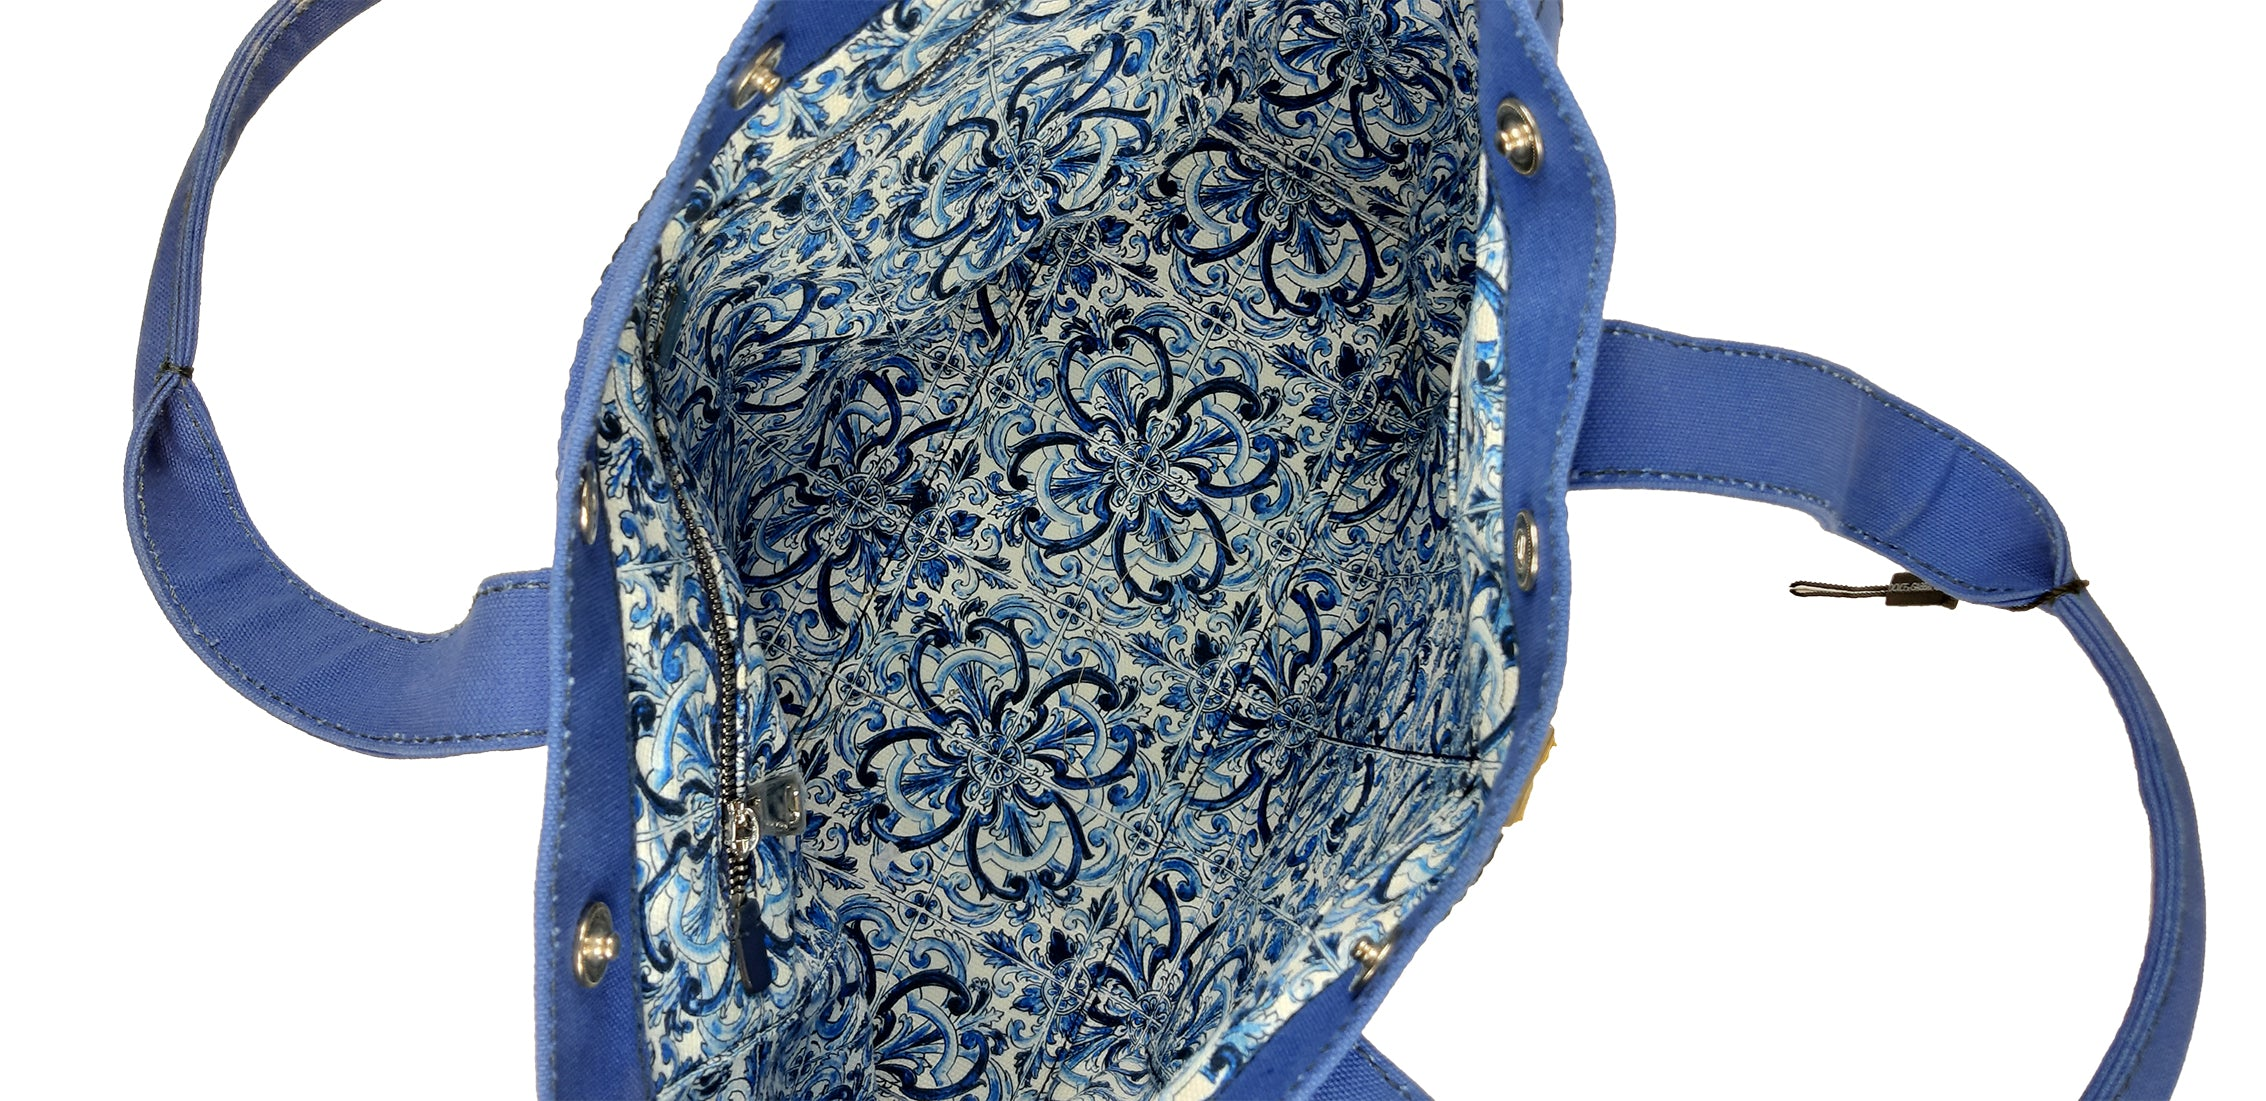 Dolce & Gabbana Blue Tote Bag in Canvas